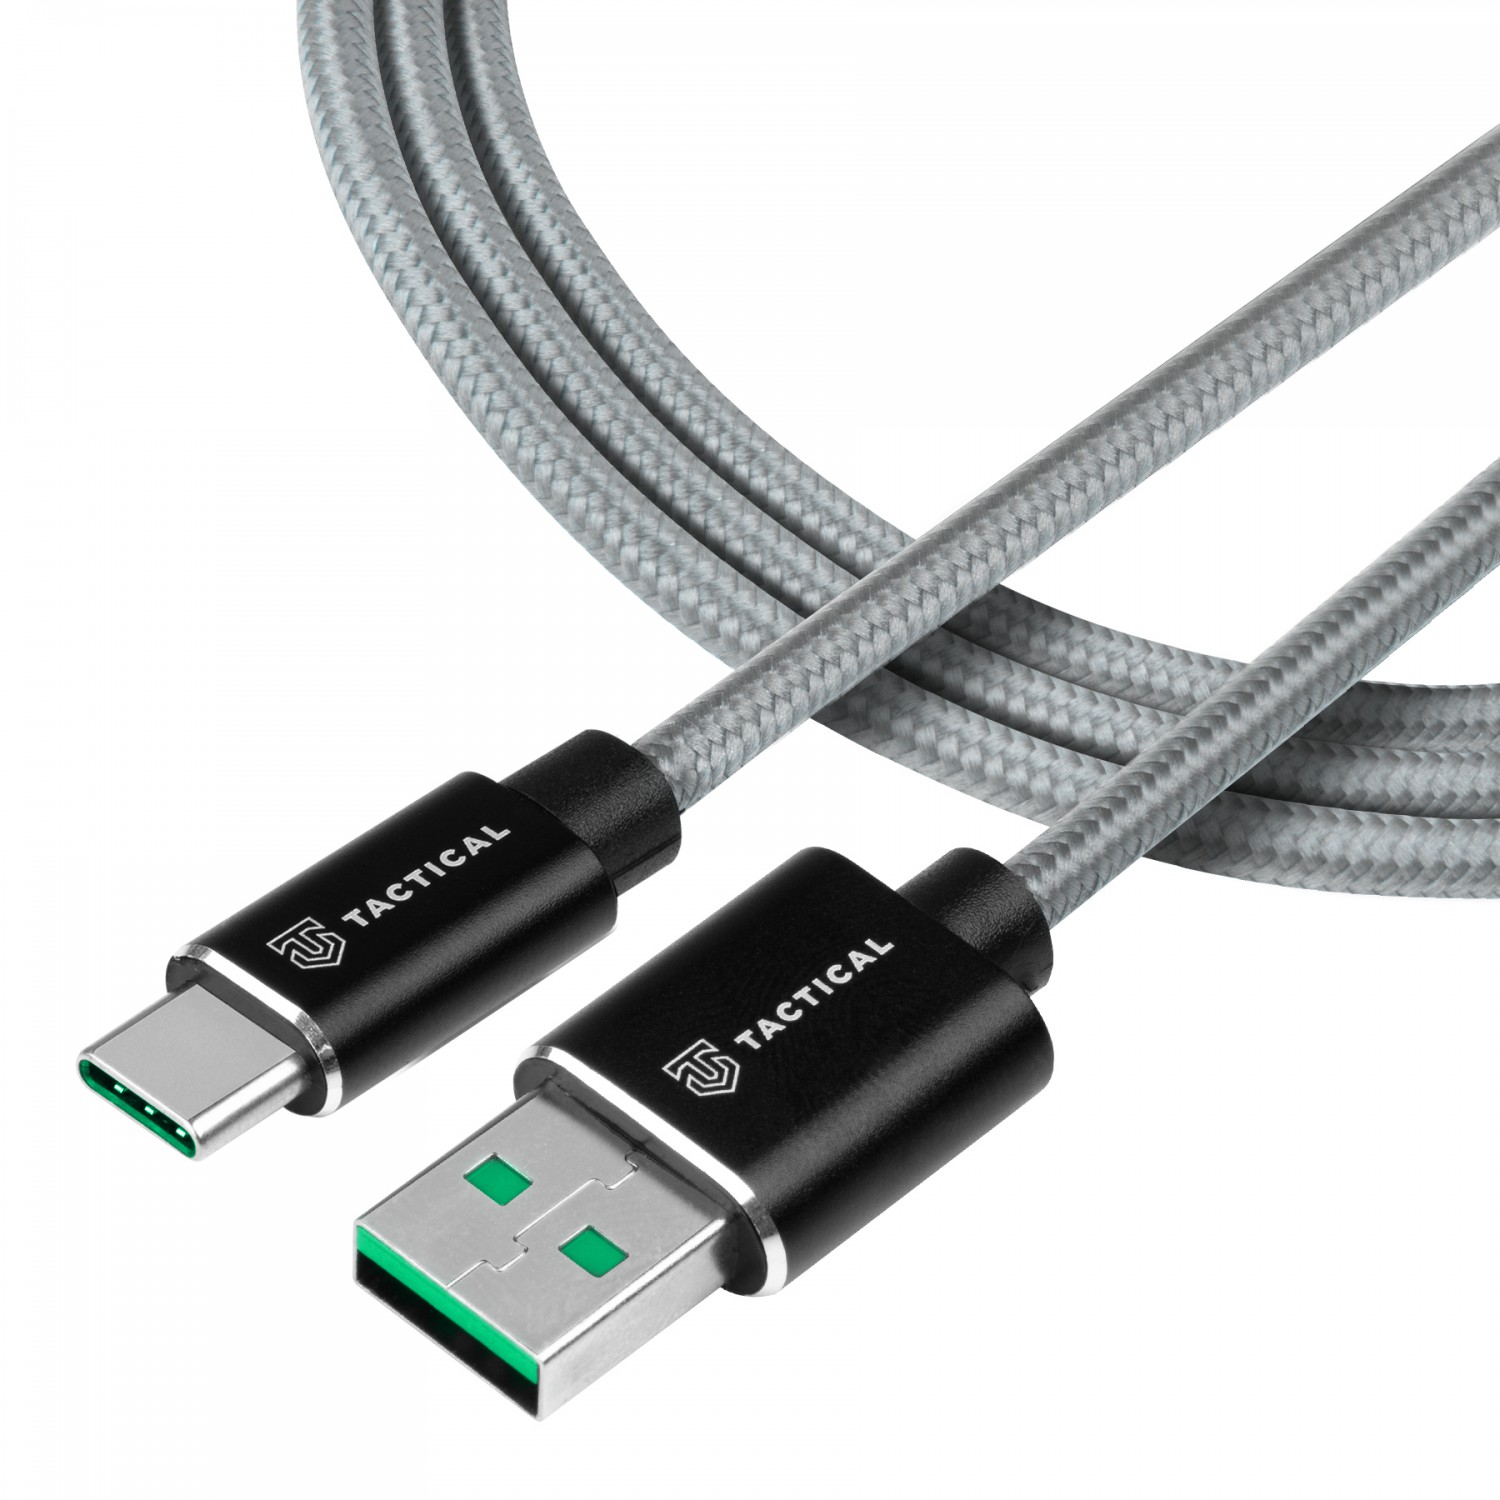 Kabel Tactical Fast Rope Aramid Cable USB-A/USB-C - SuperVOOC 2.0 CHARGE, 1m, šedá